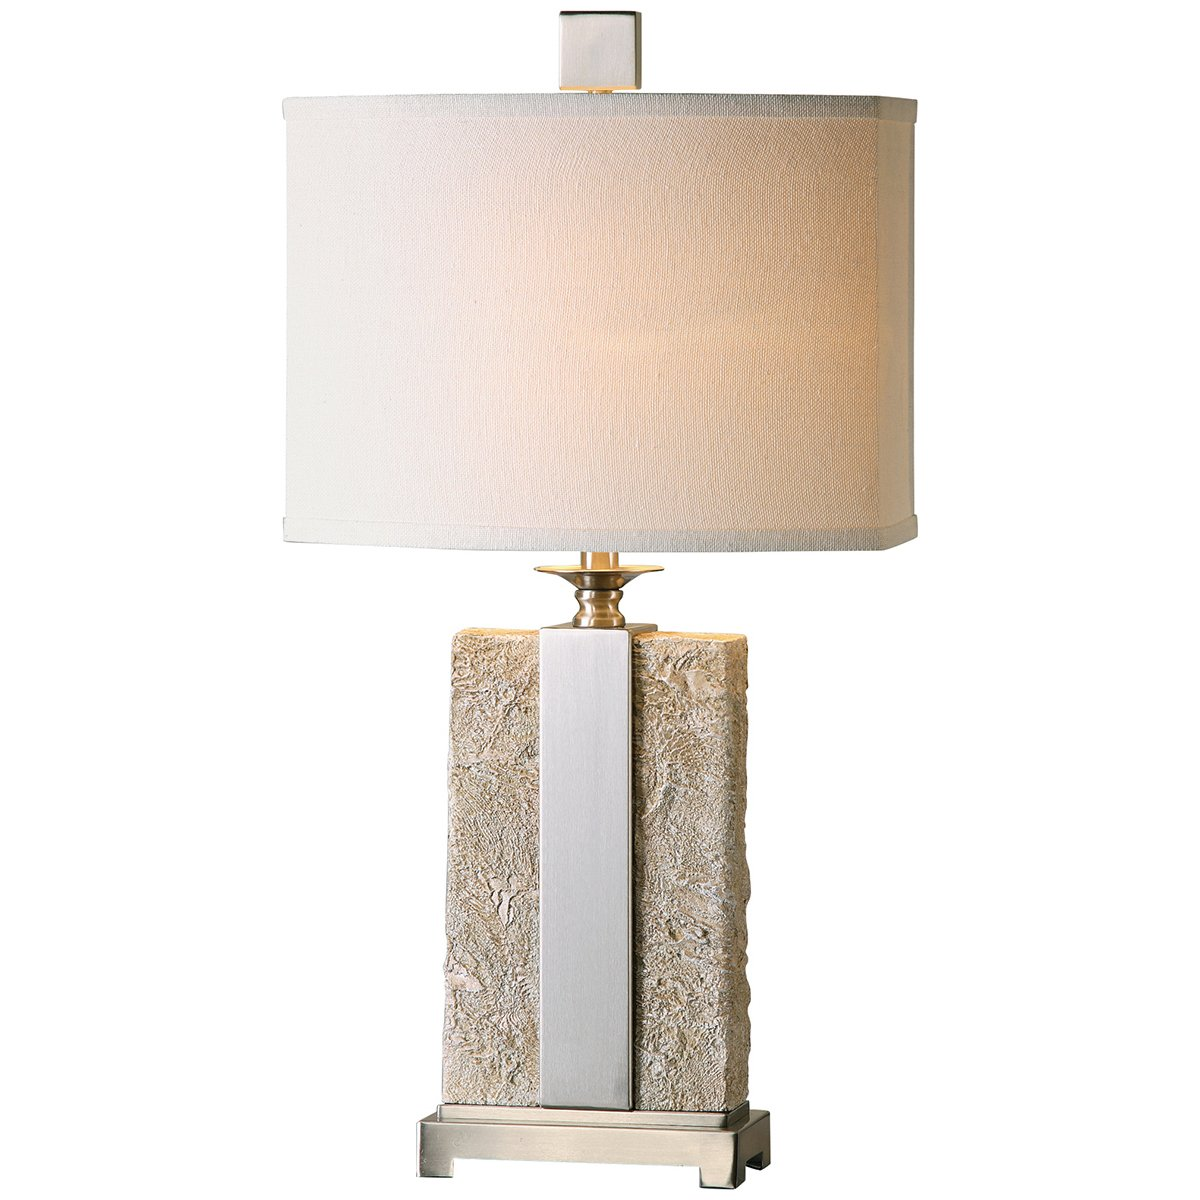 Amazon.com: Uttermost 26508 1 Bonea Table Lamp, Stone Ivory: Home U0026 Kitchen